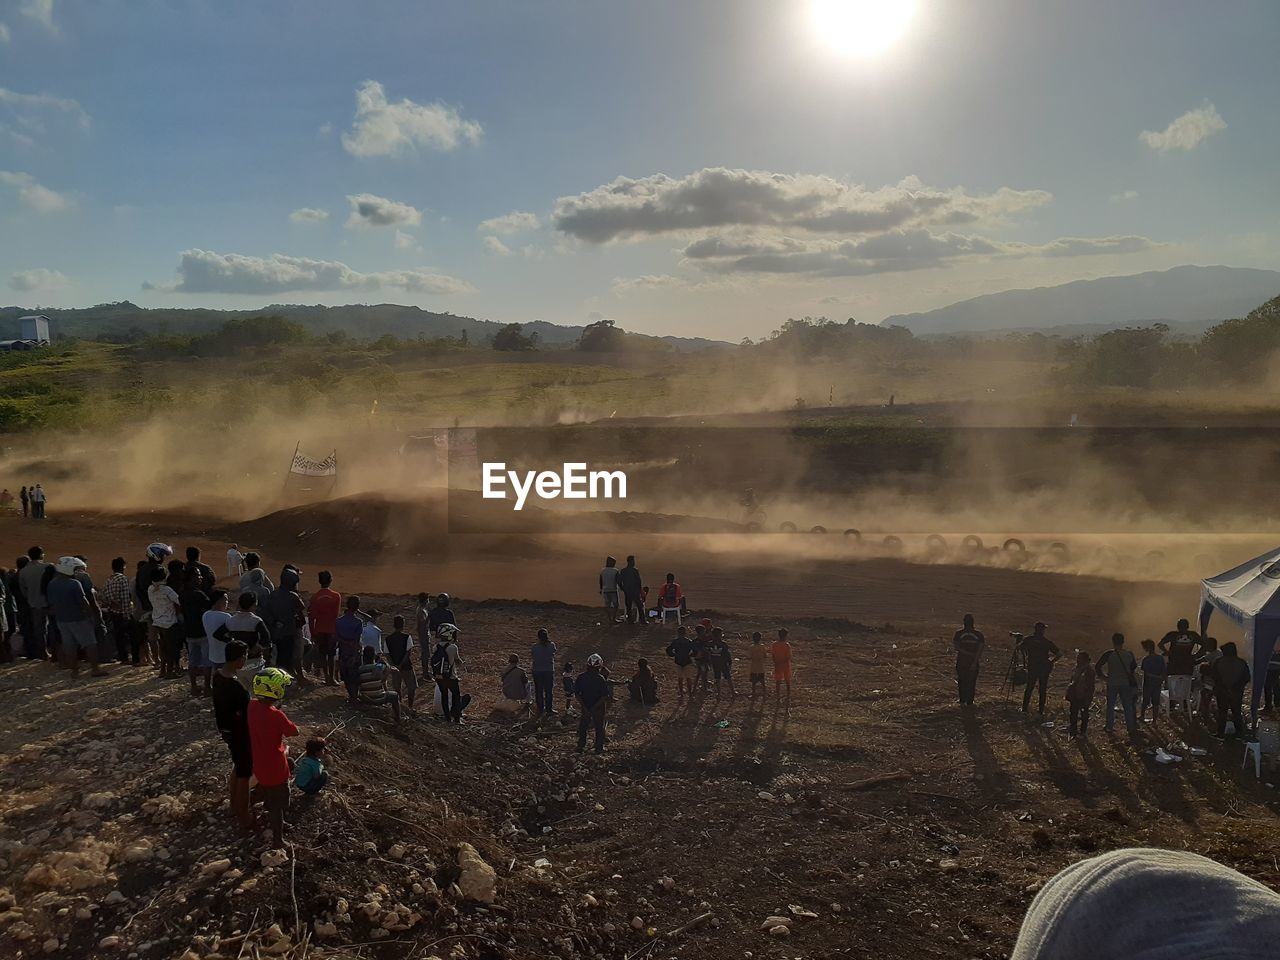 crowd, large group of people, real people, group of people, environment, smoke - physical structure, sky, nature, men, land, day, landscape, environmental issues, heat - temperature, lifestyles, sunlight, outdoors, field, women, pollution, lens flare, hot spring, dust